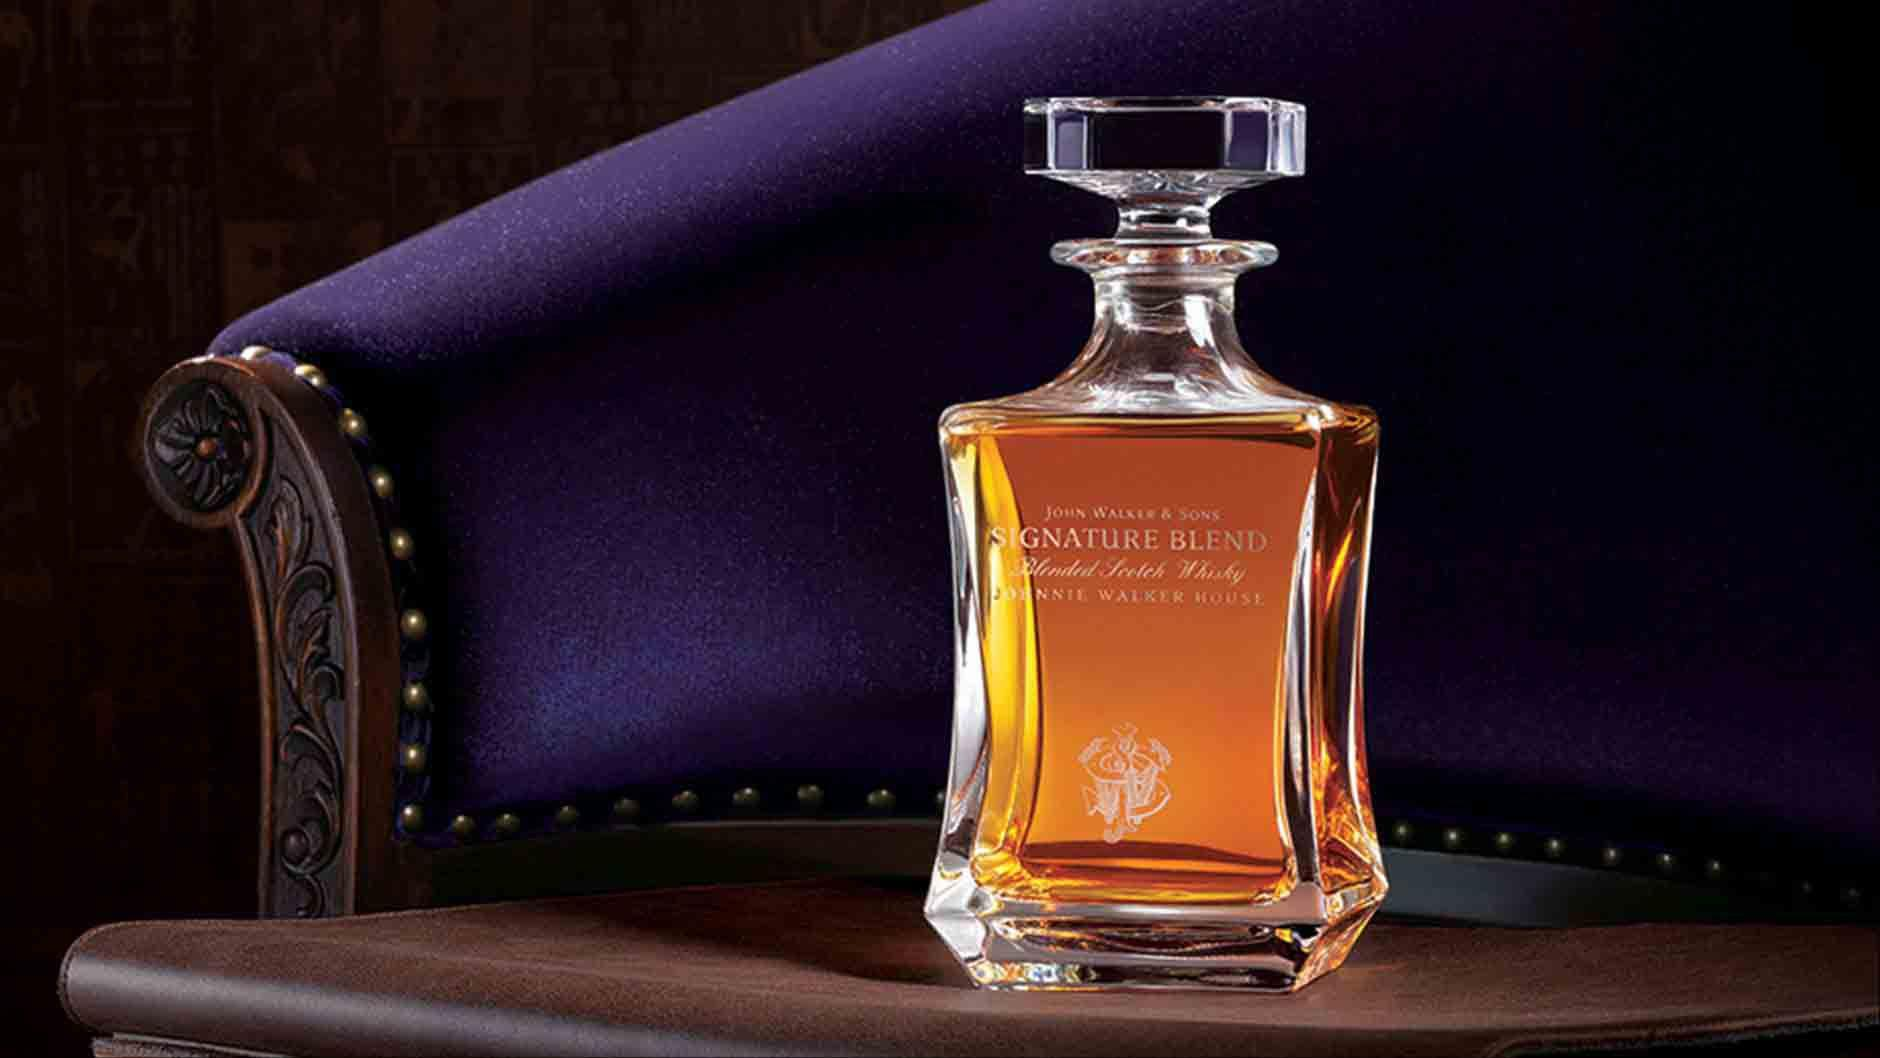 Botella de John Walker & Sons Signature Blend